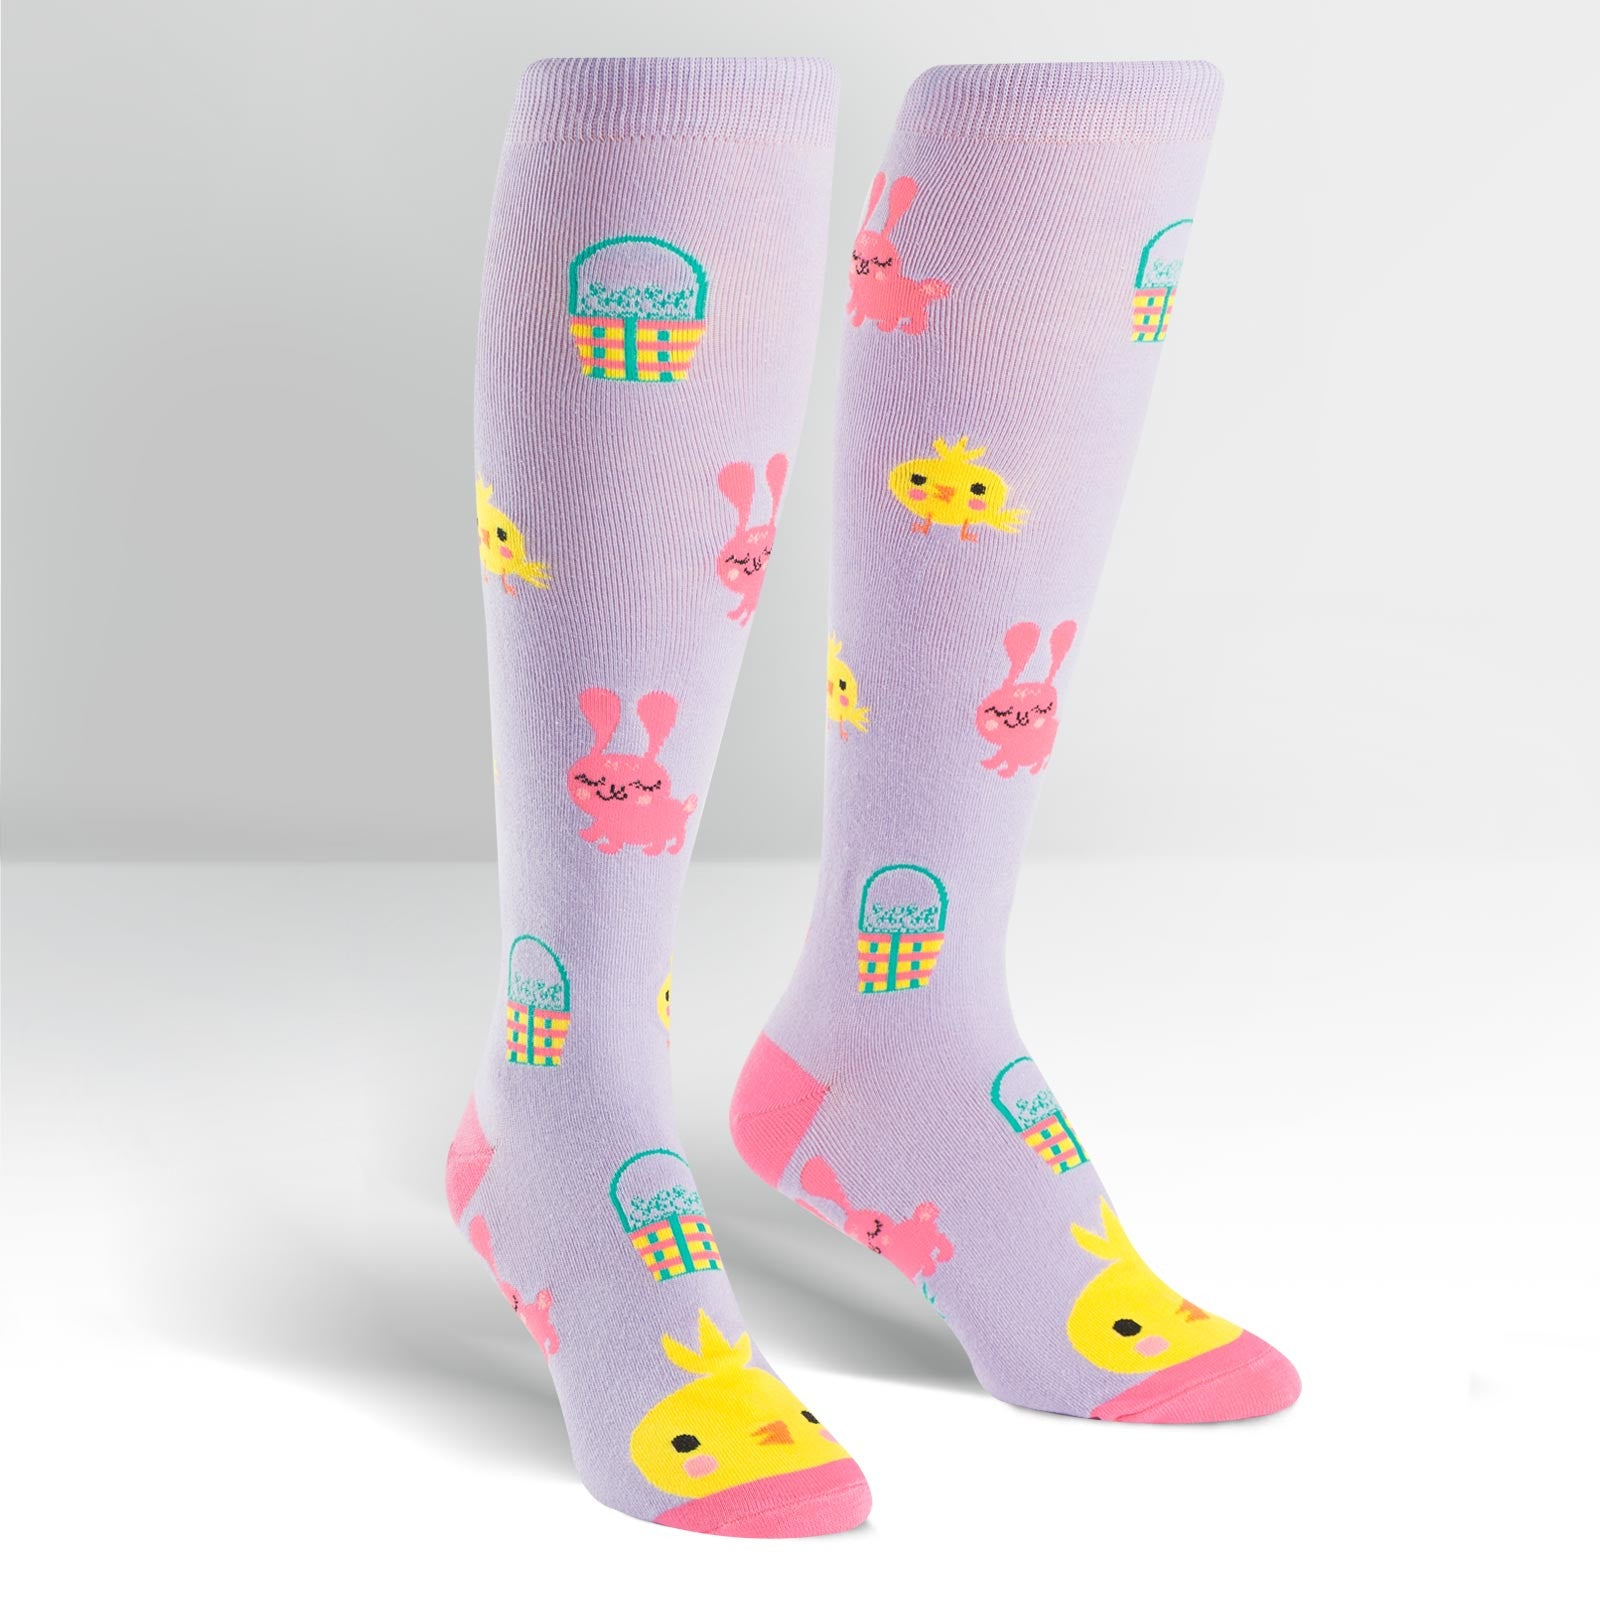 SALE - Women's Hoppy Easter Knee High